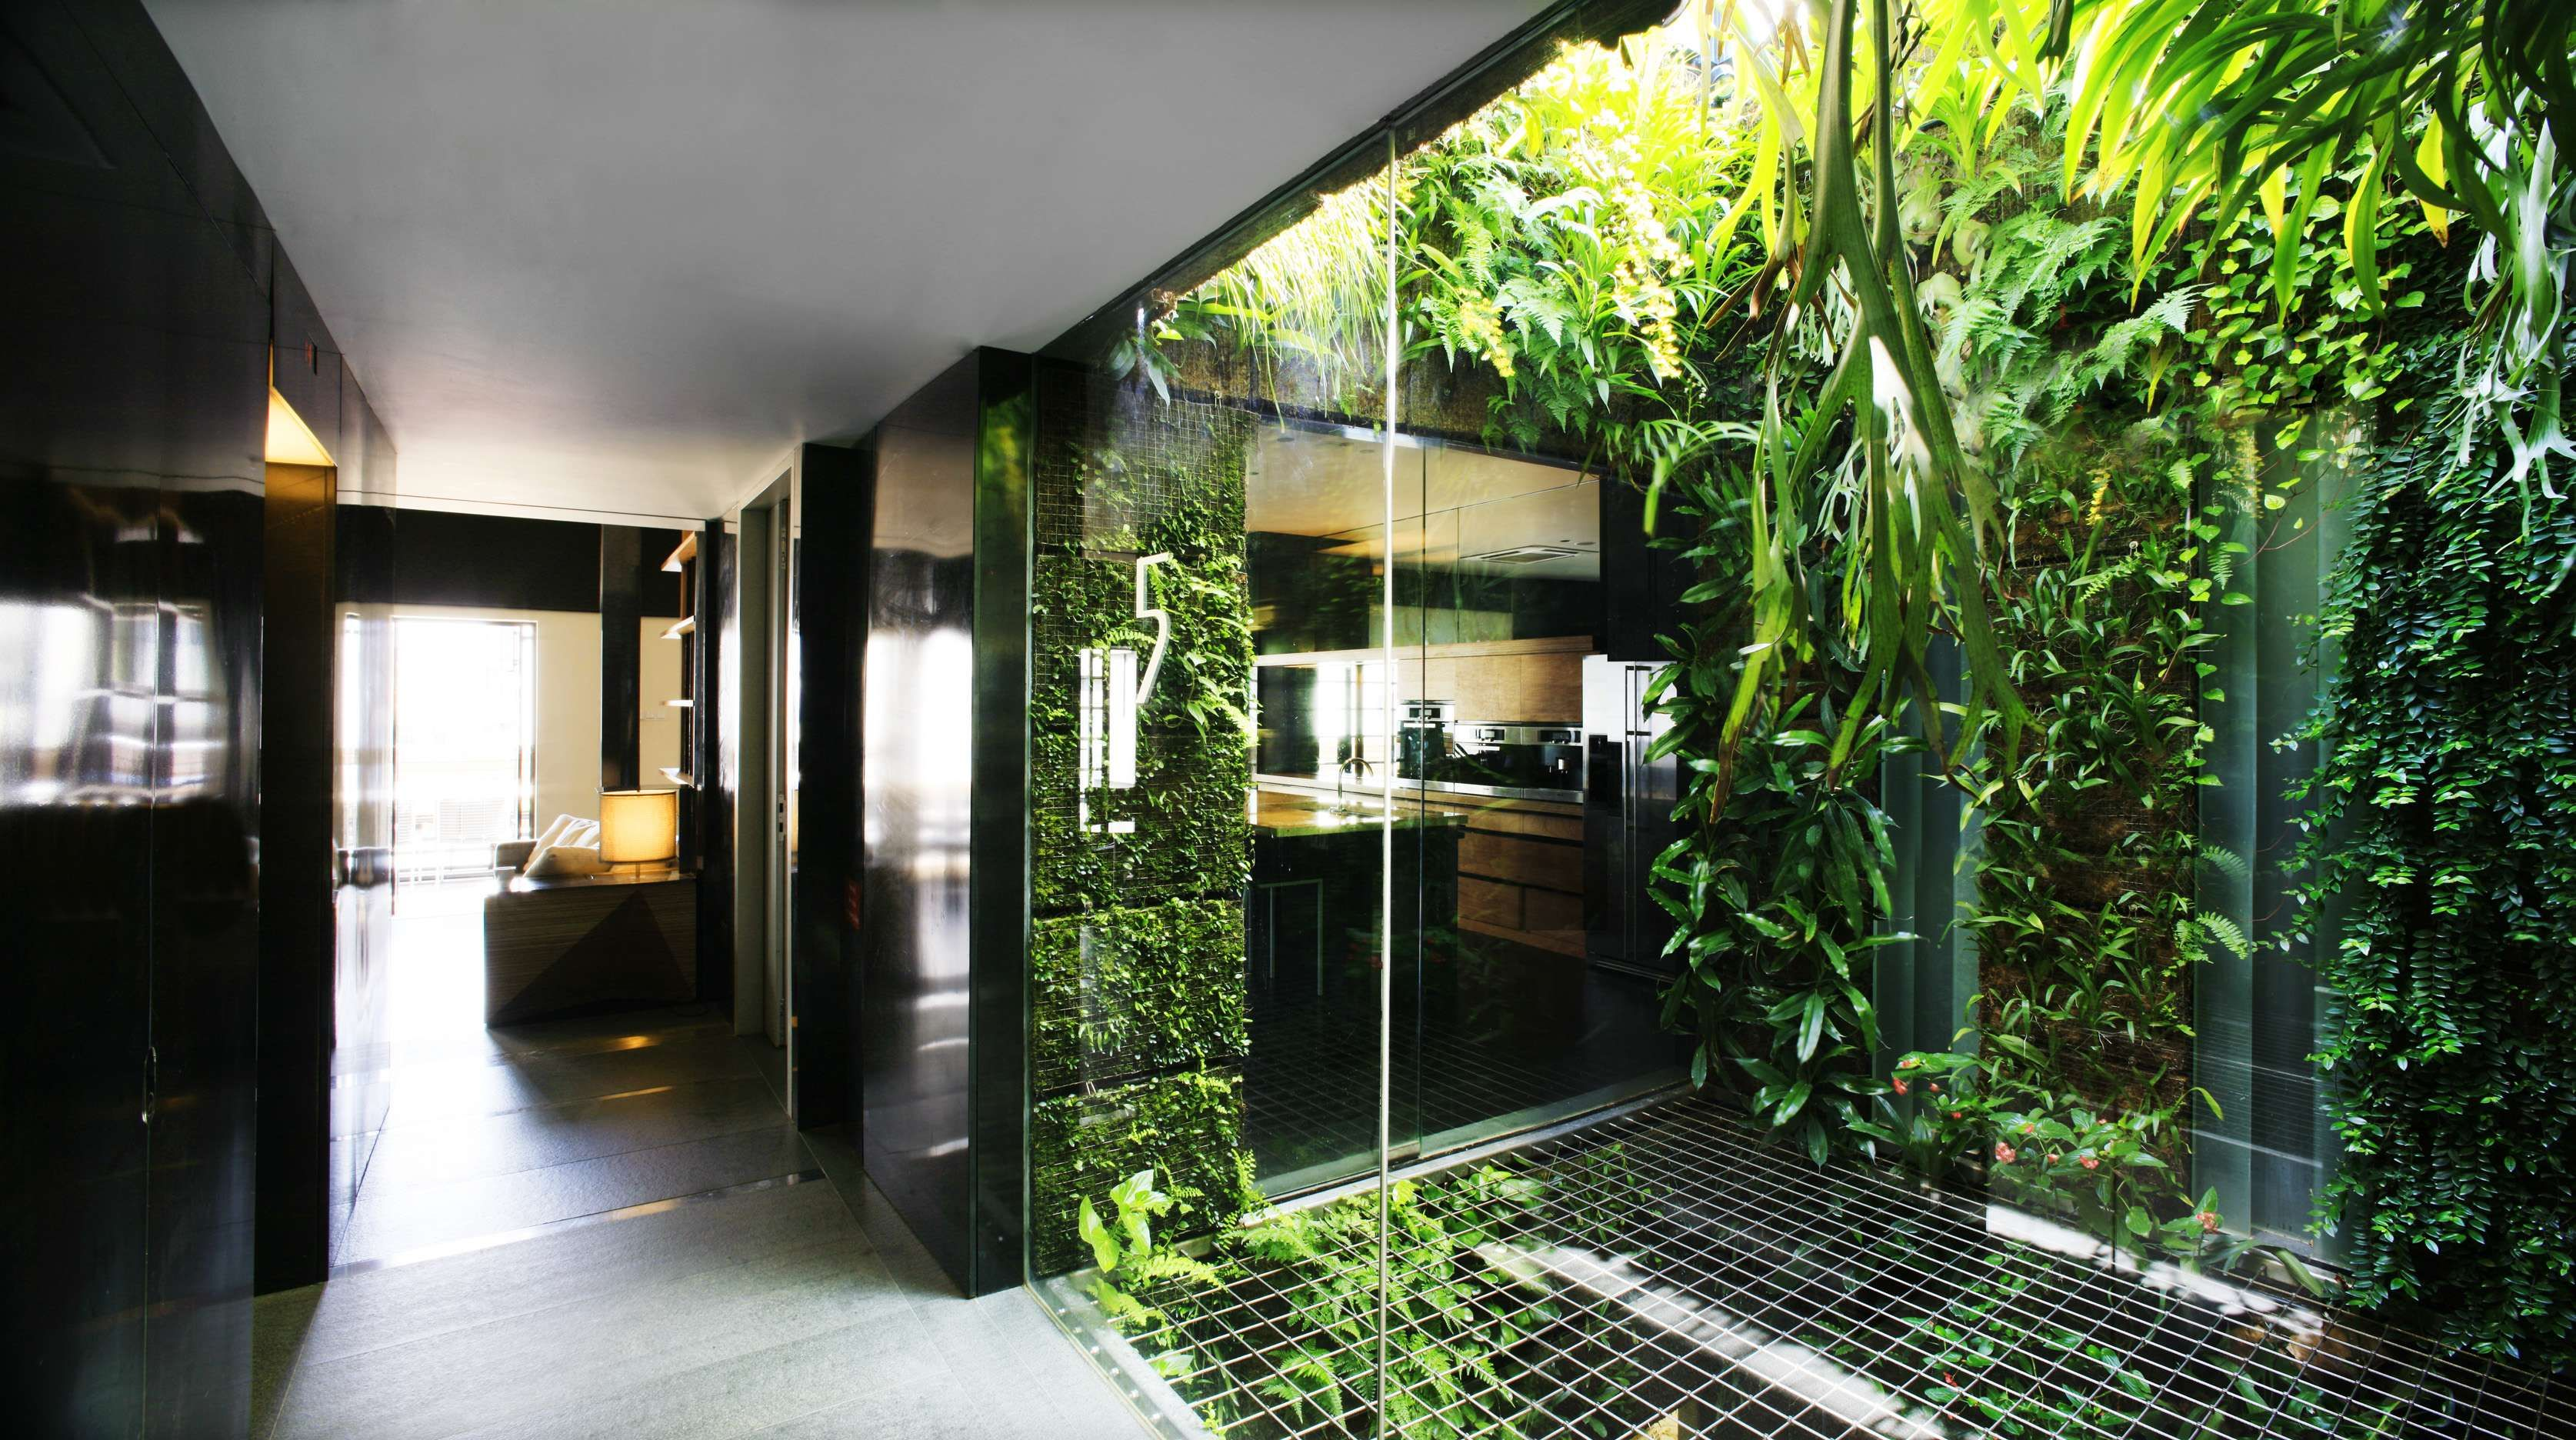 Woha Is A Singapore Based Architecture Practice Founded